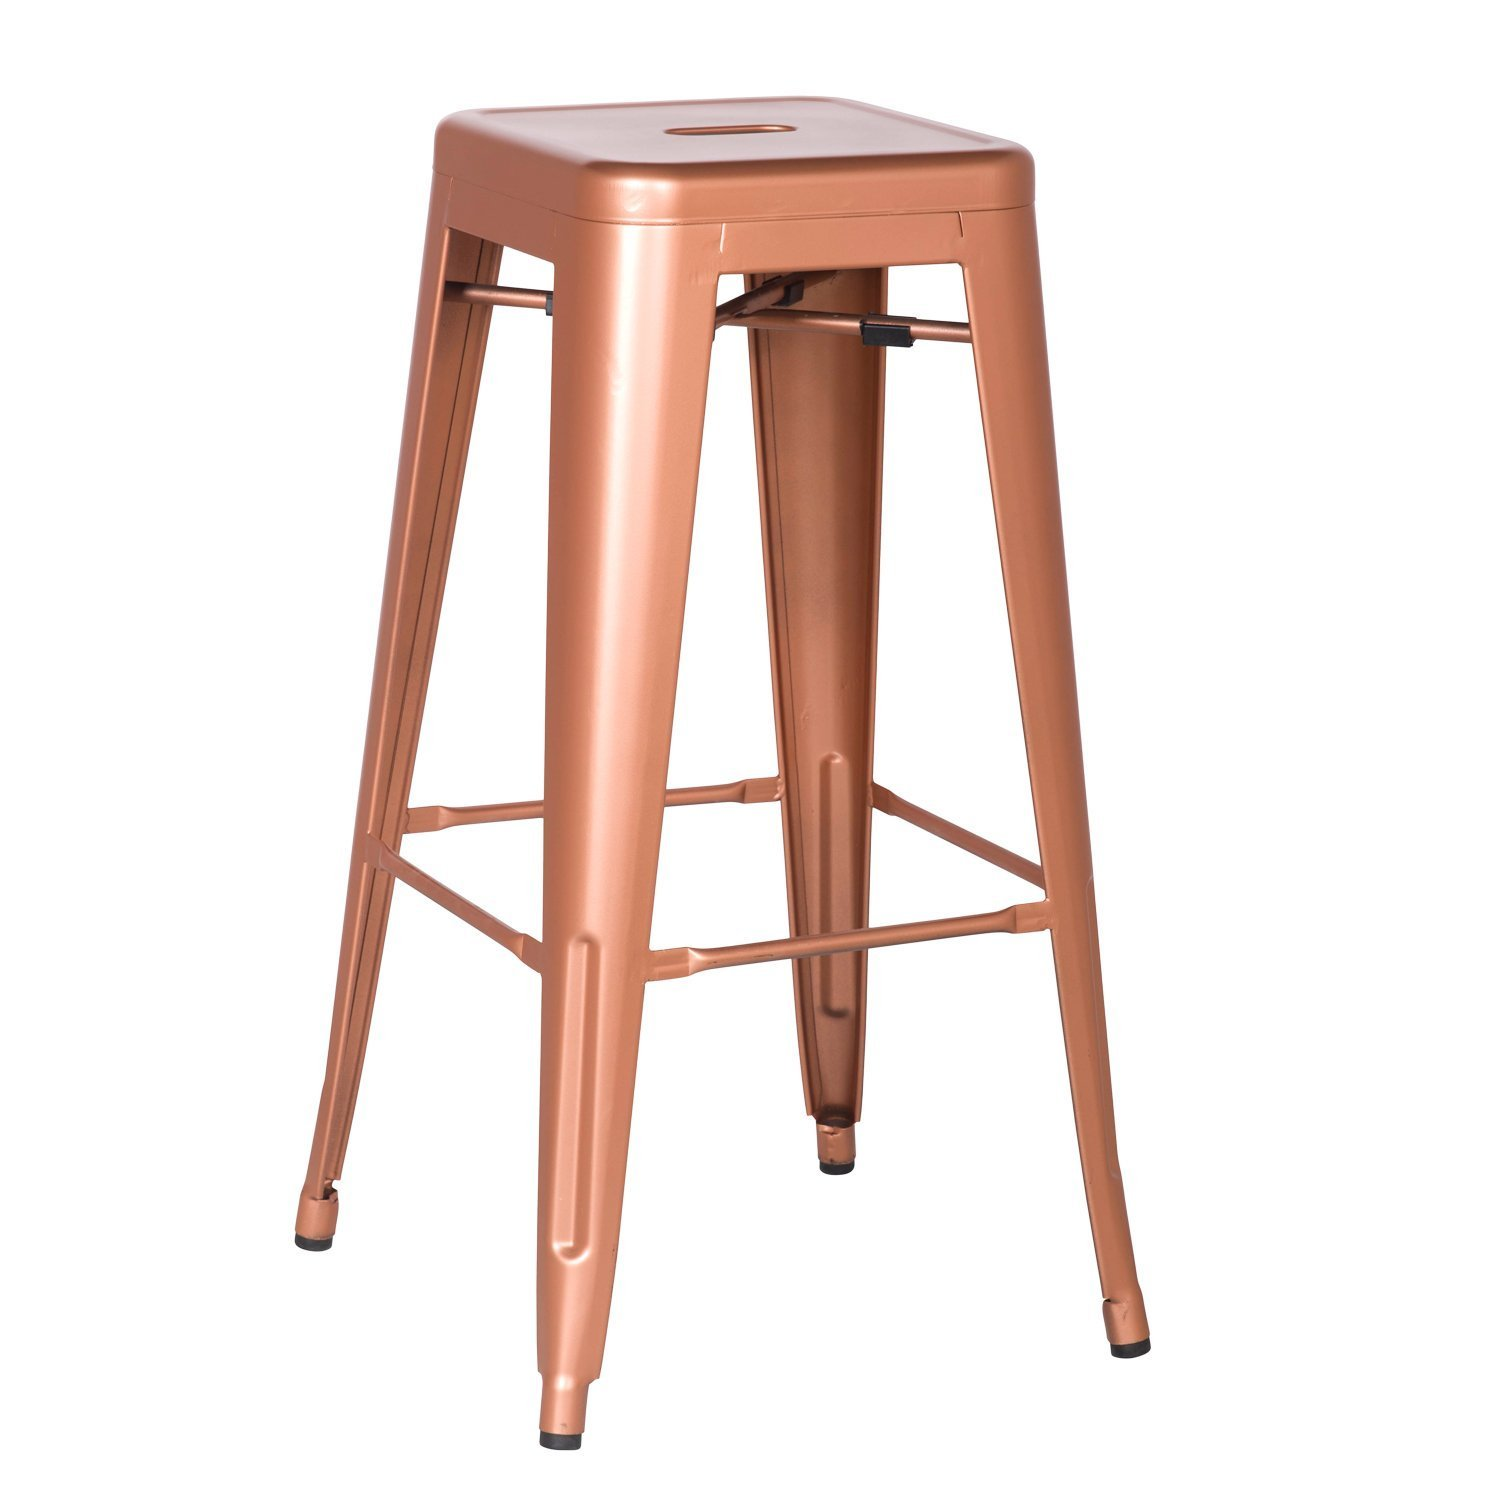 Homebeez Patio Industrial Bar Counter Stools 30 inches Metal Style Chair/ Stools Set of 2 in Copper